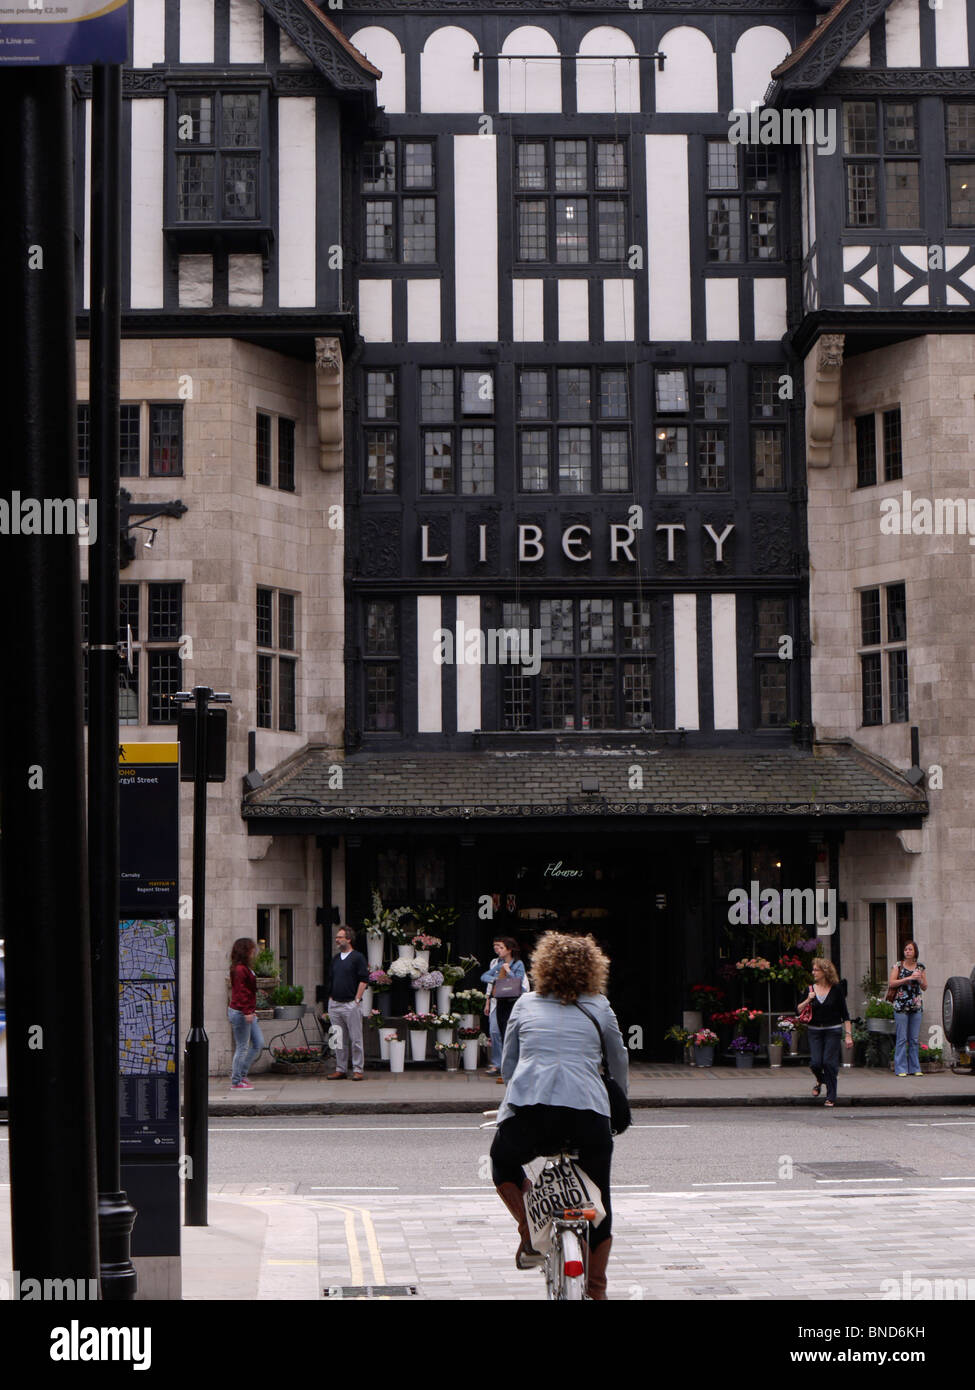 liberty store london stockfotos liberty store london bilder alamy. Black Bedroom Furniture Sets. Home Design Ideas